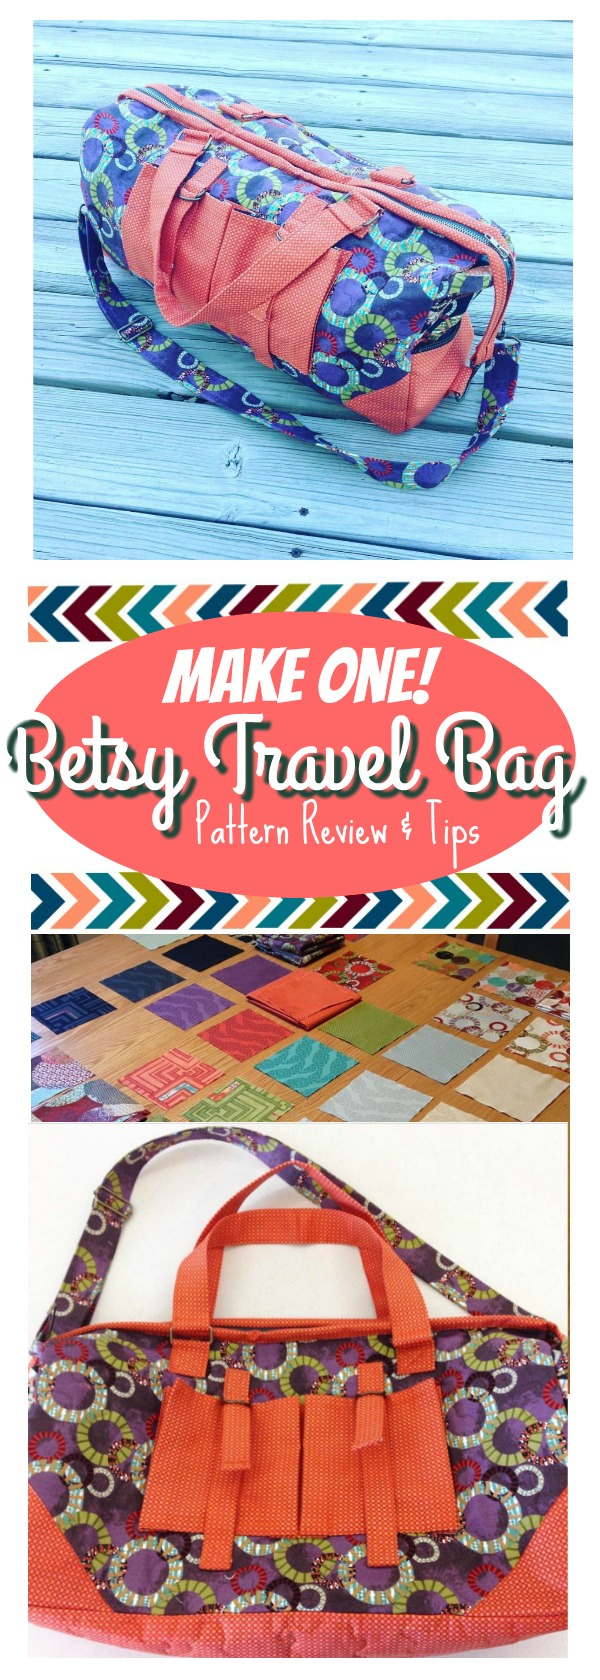 Betsy Travel Bag